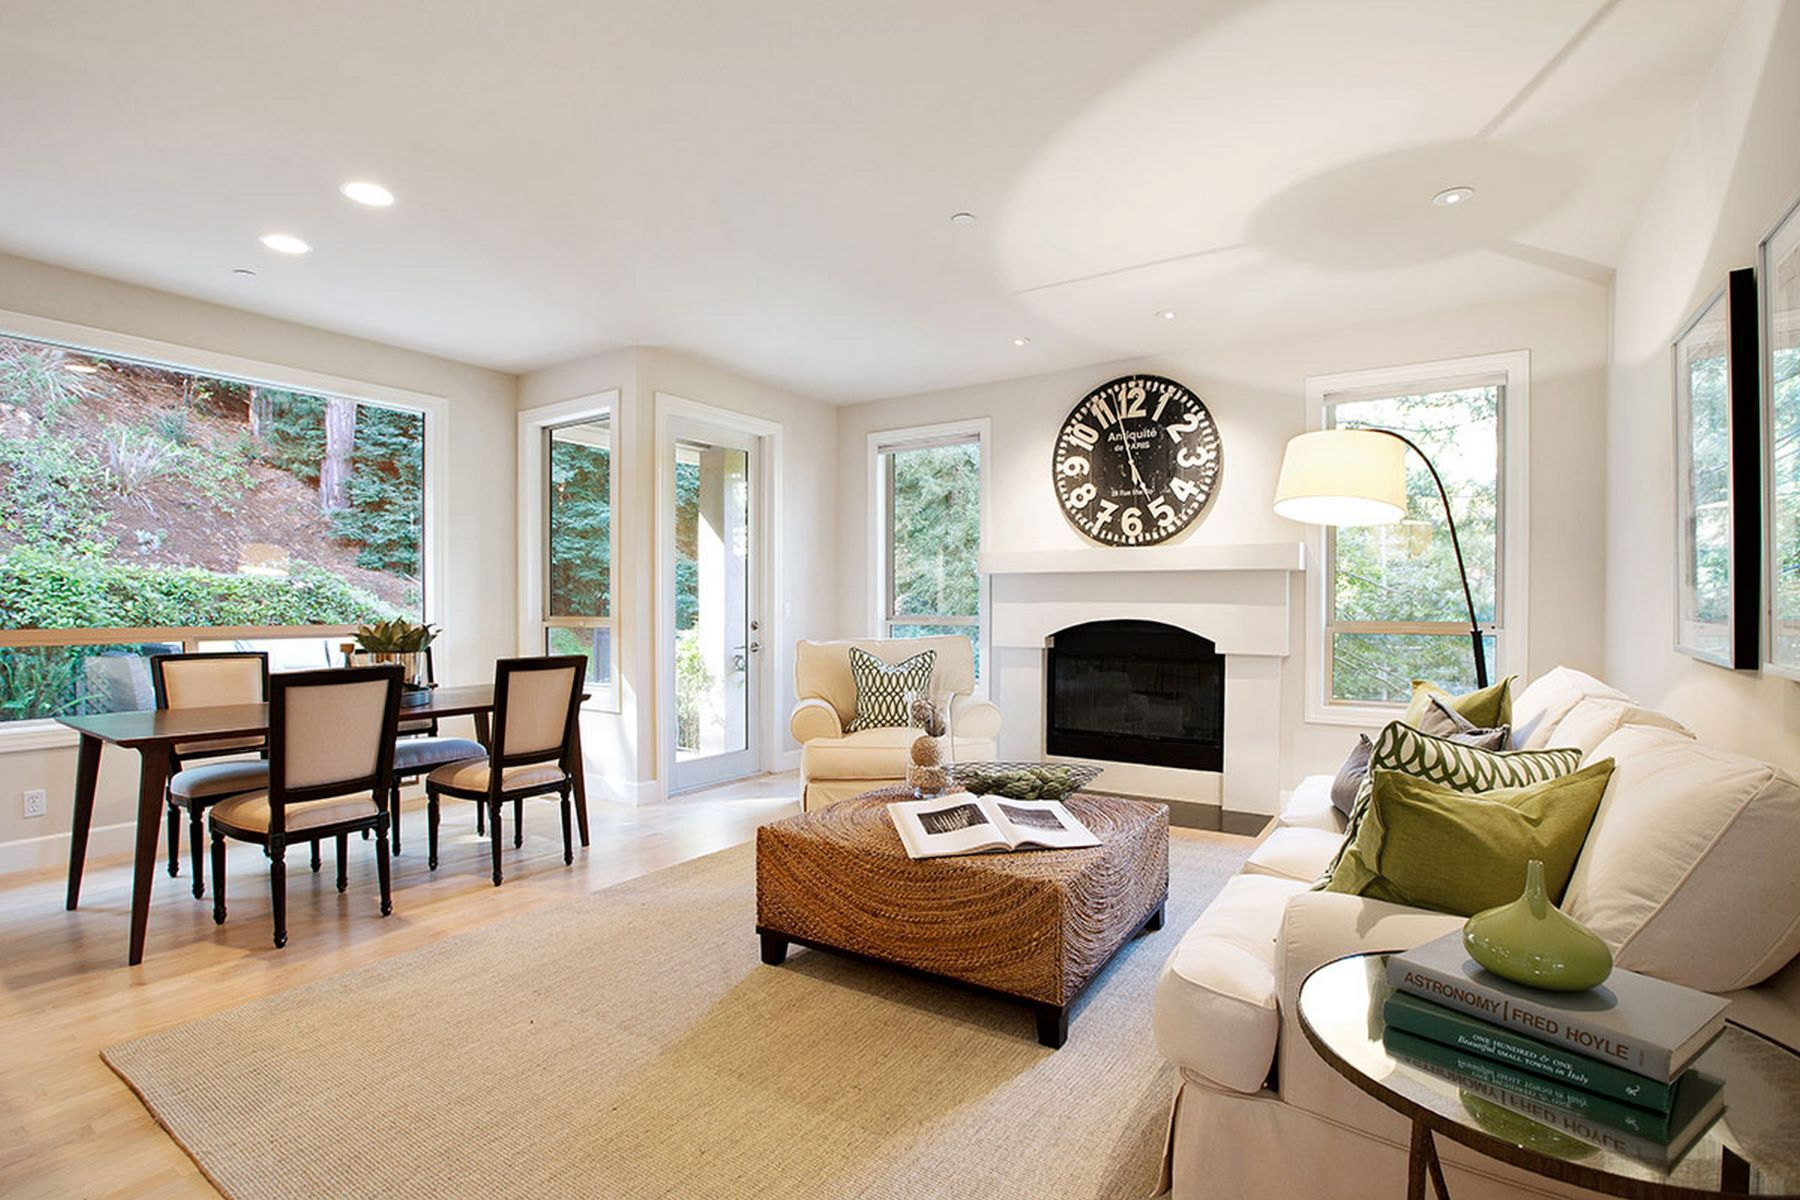 Single Family Home for Sale at Architecturally Stunning Private Estate 255 Ralston Avenue Mill Valley, California, 94941 United States